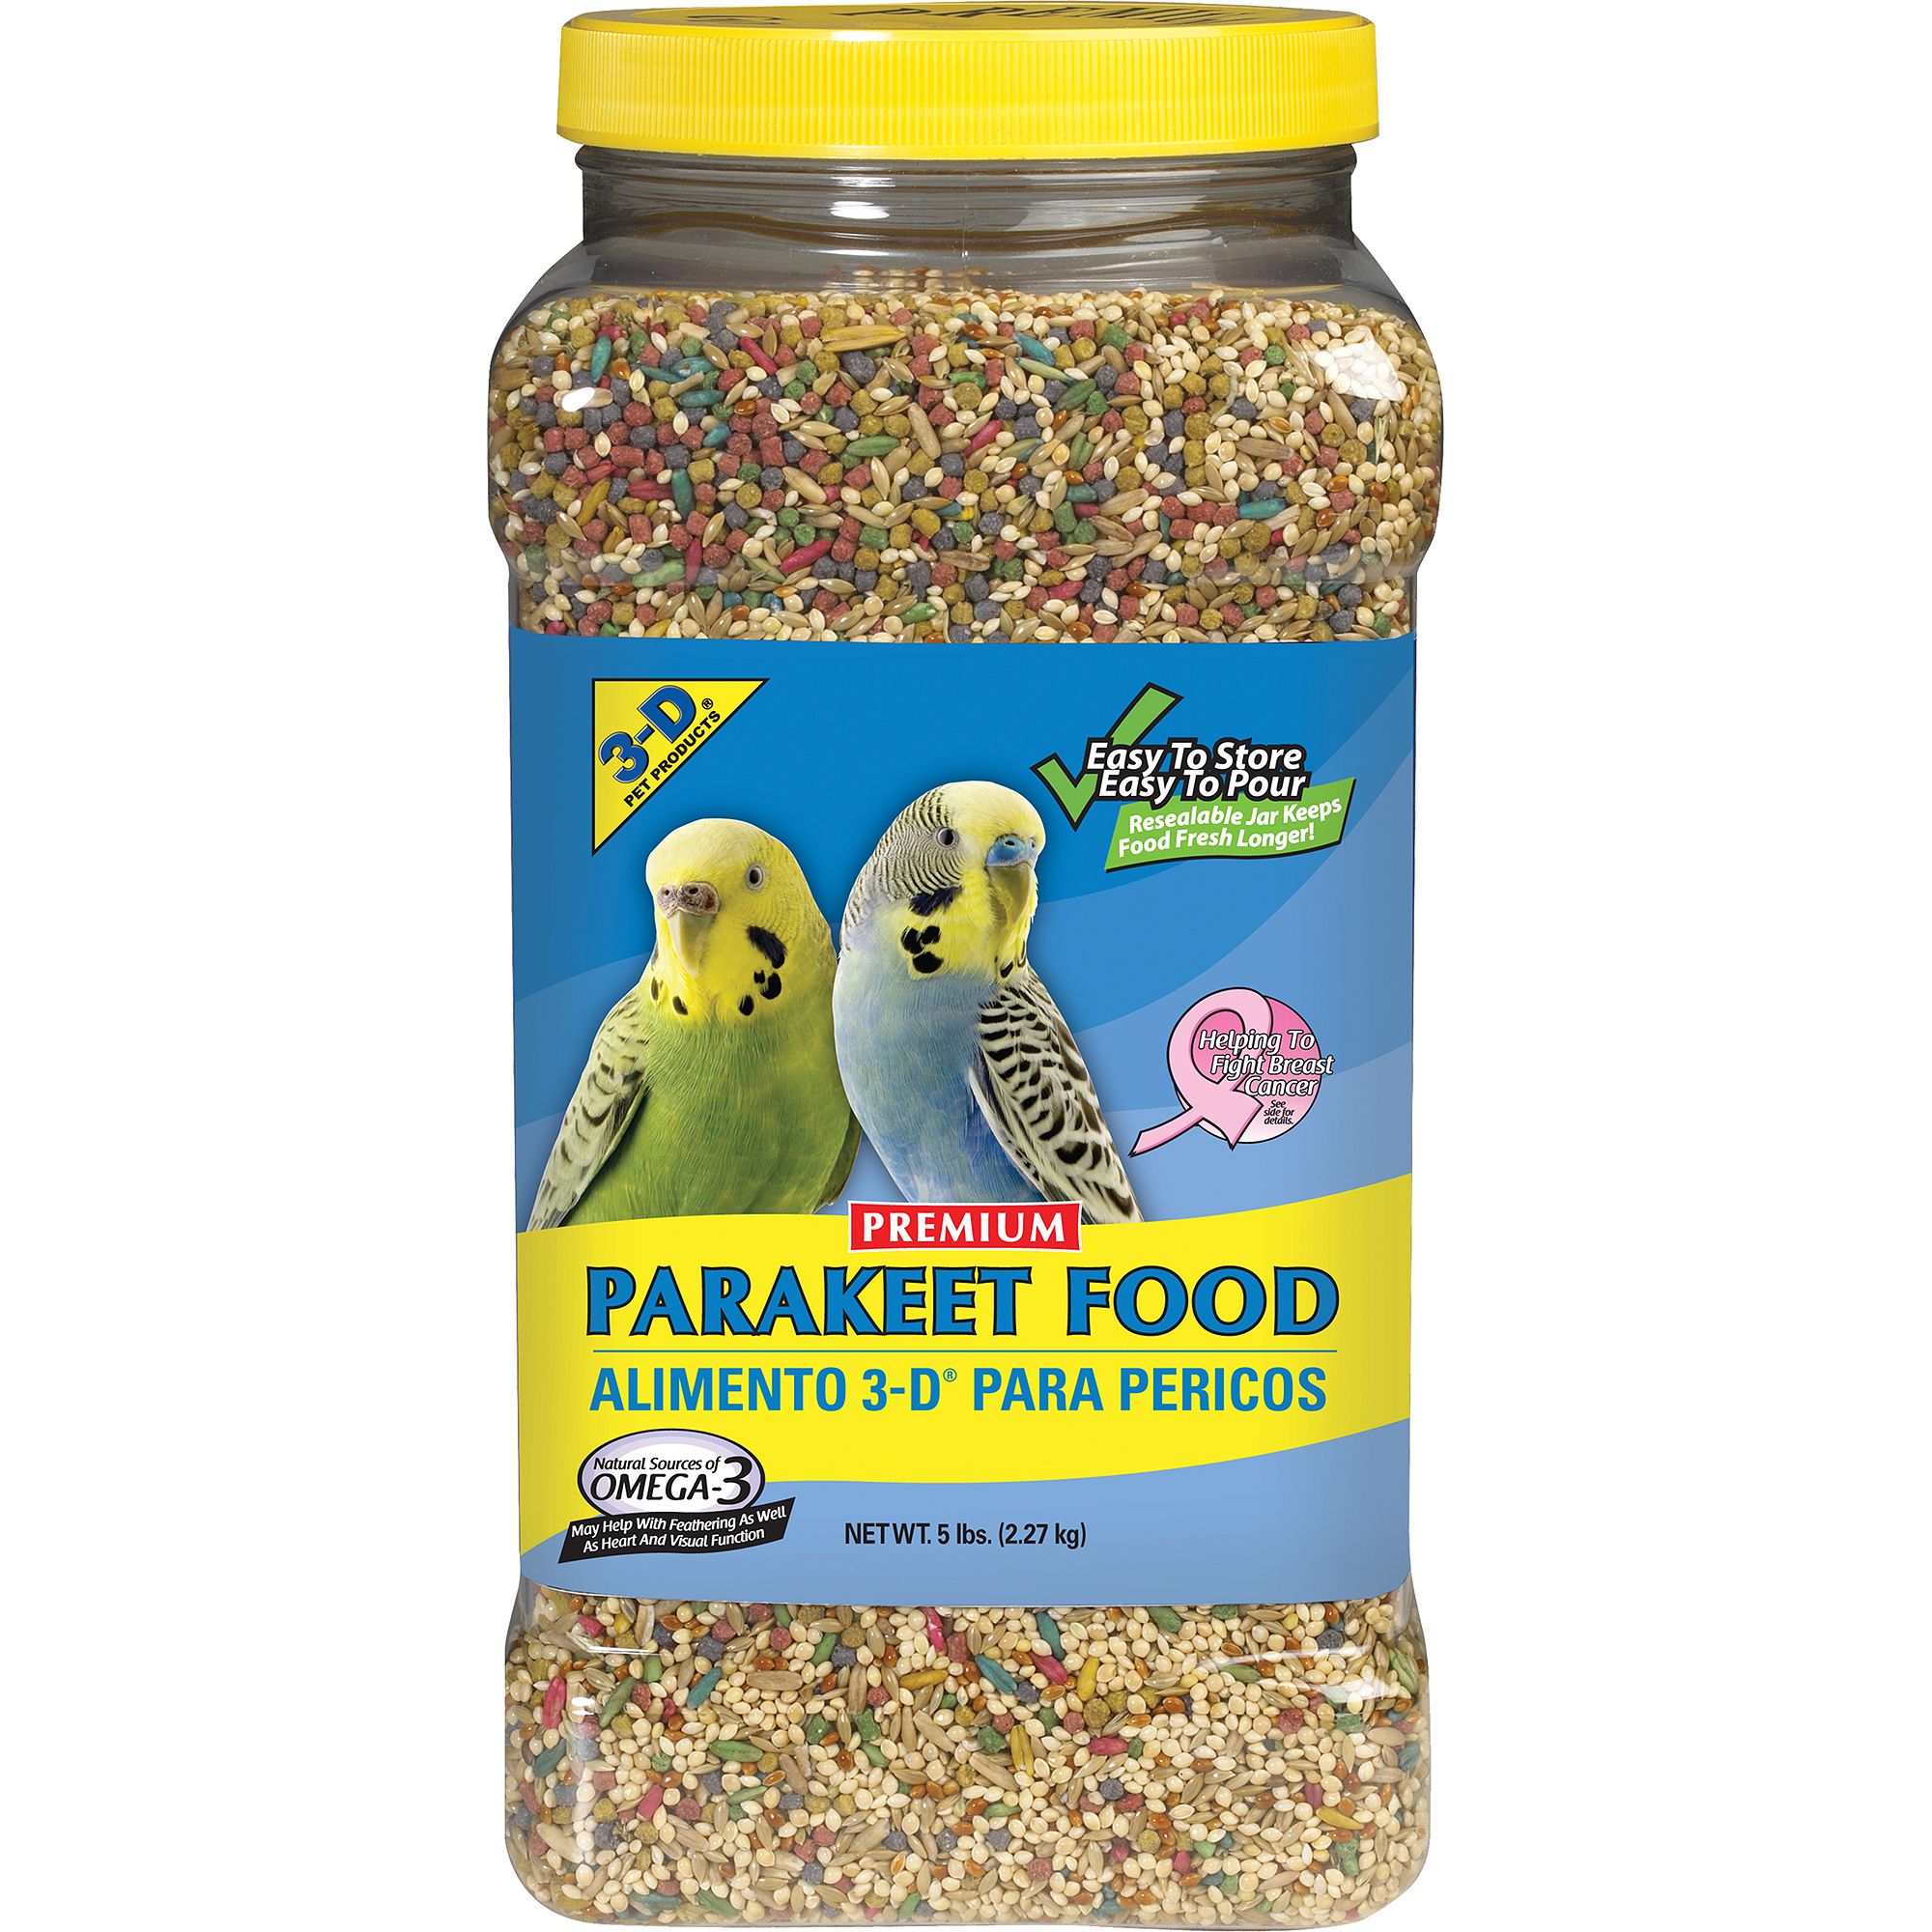 3-D Pet Products Premium Parakeet Food, 5 lb